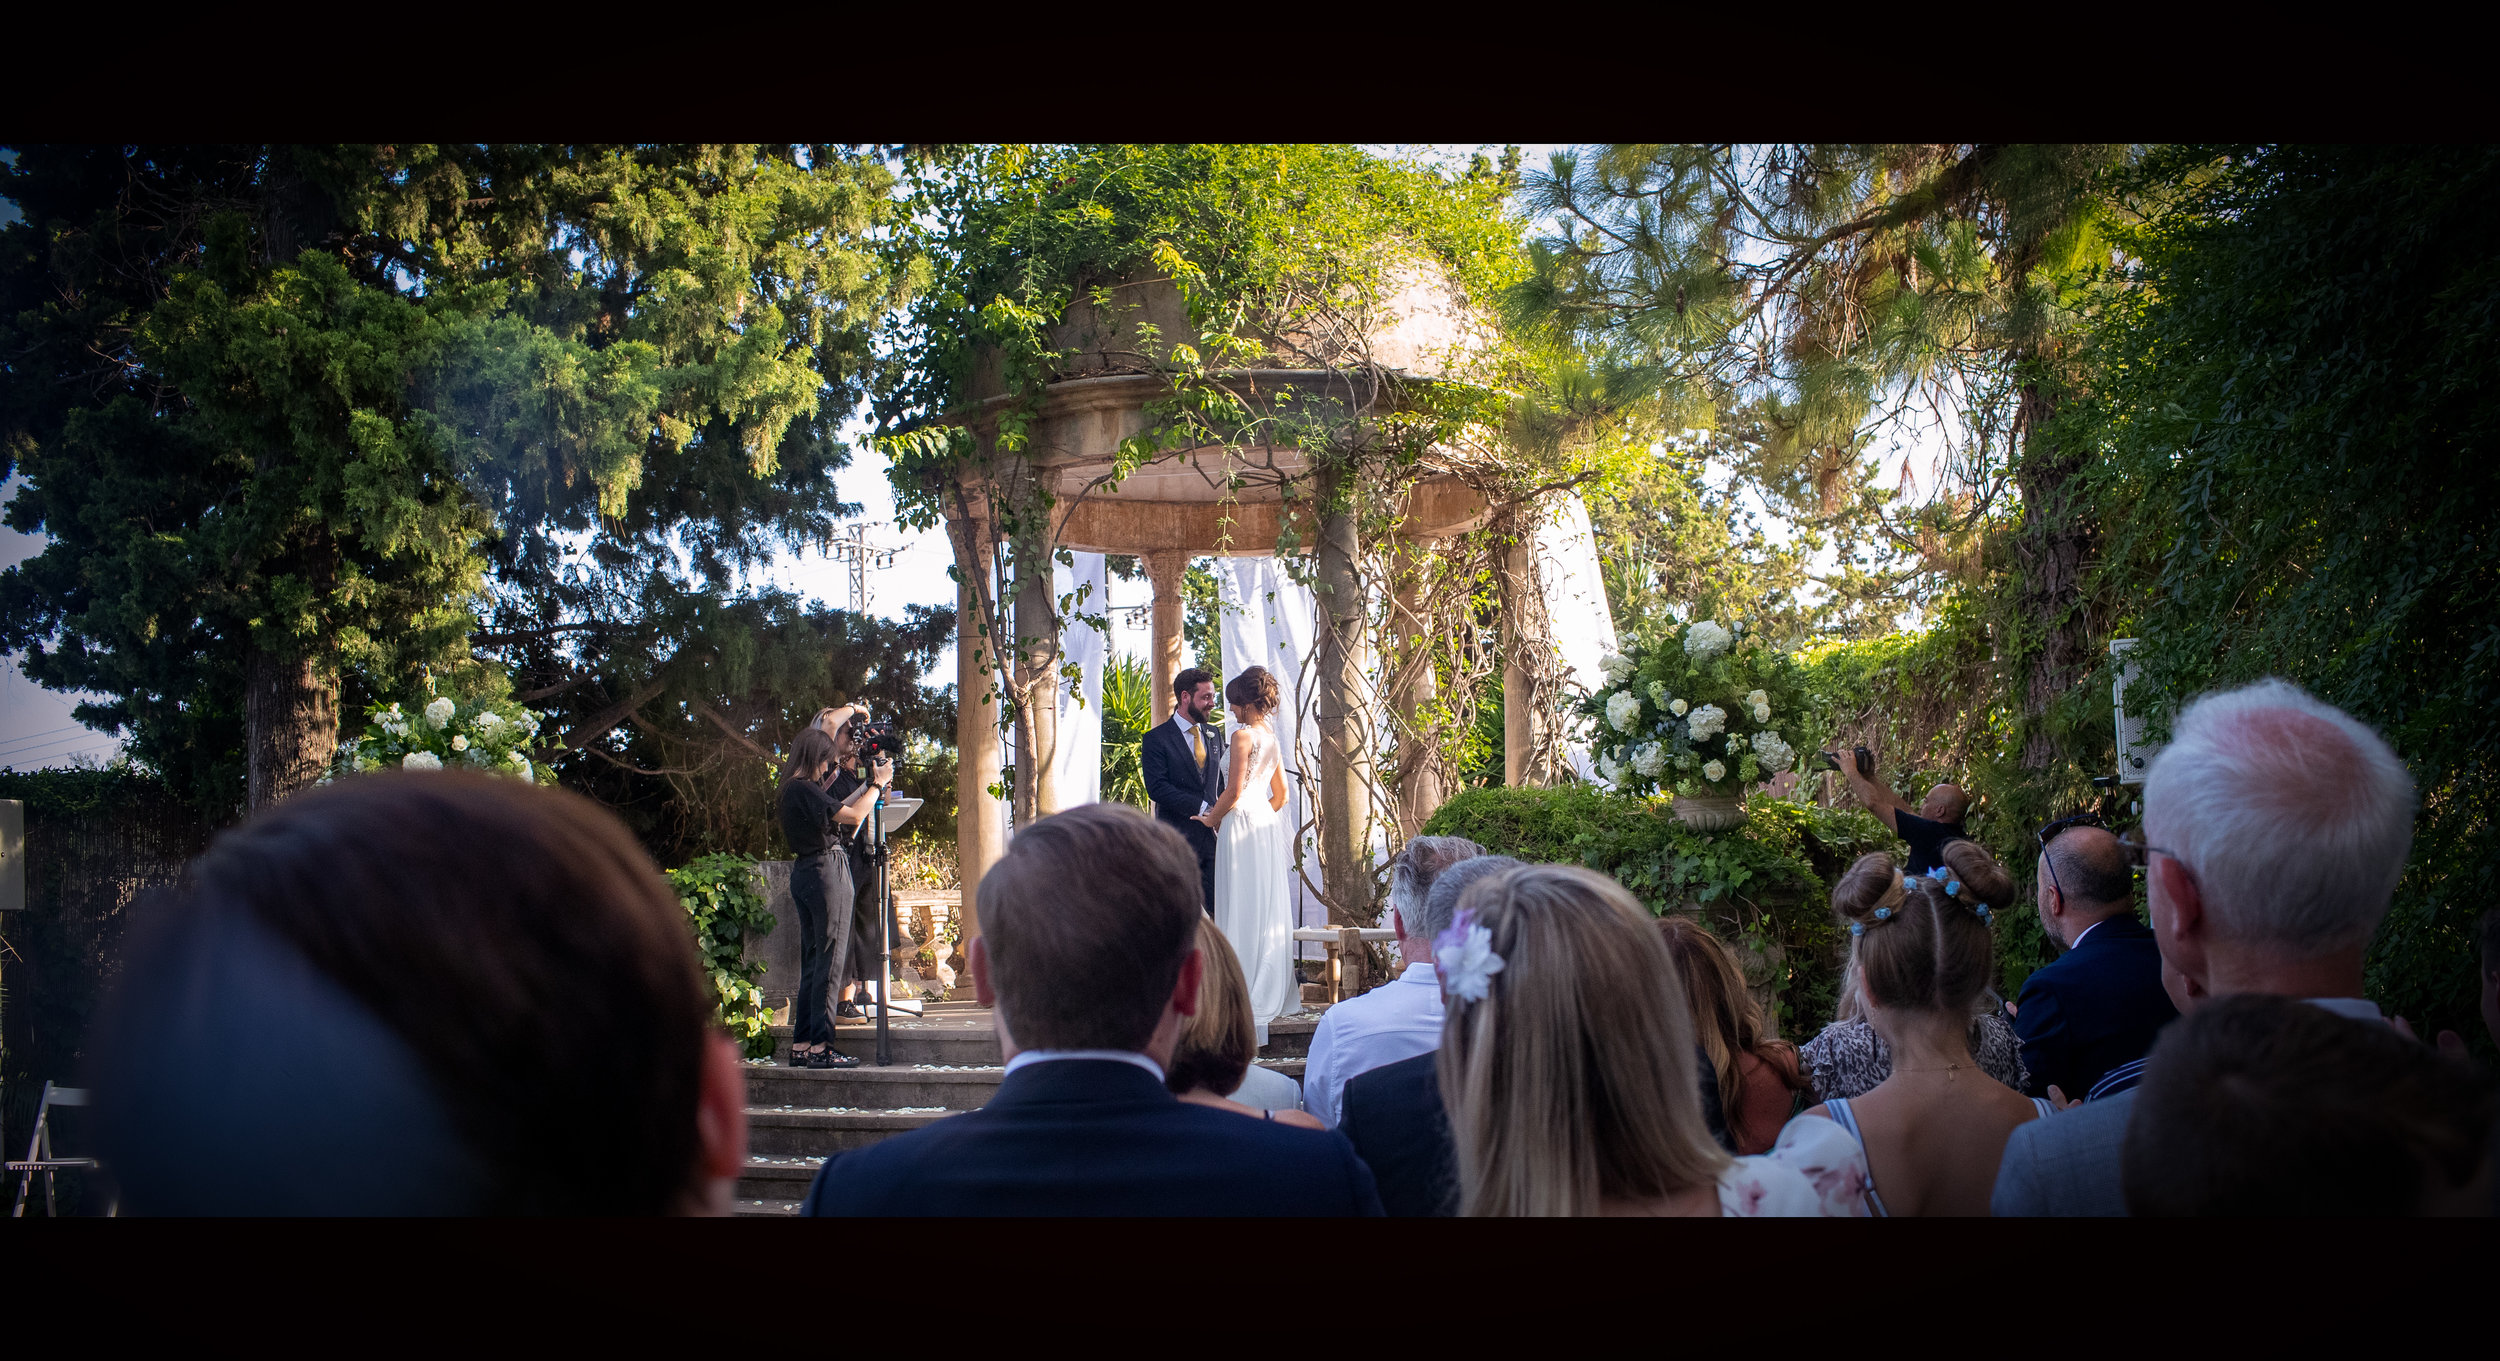 Weddings - Have been known to work at some …